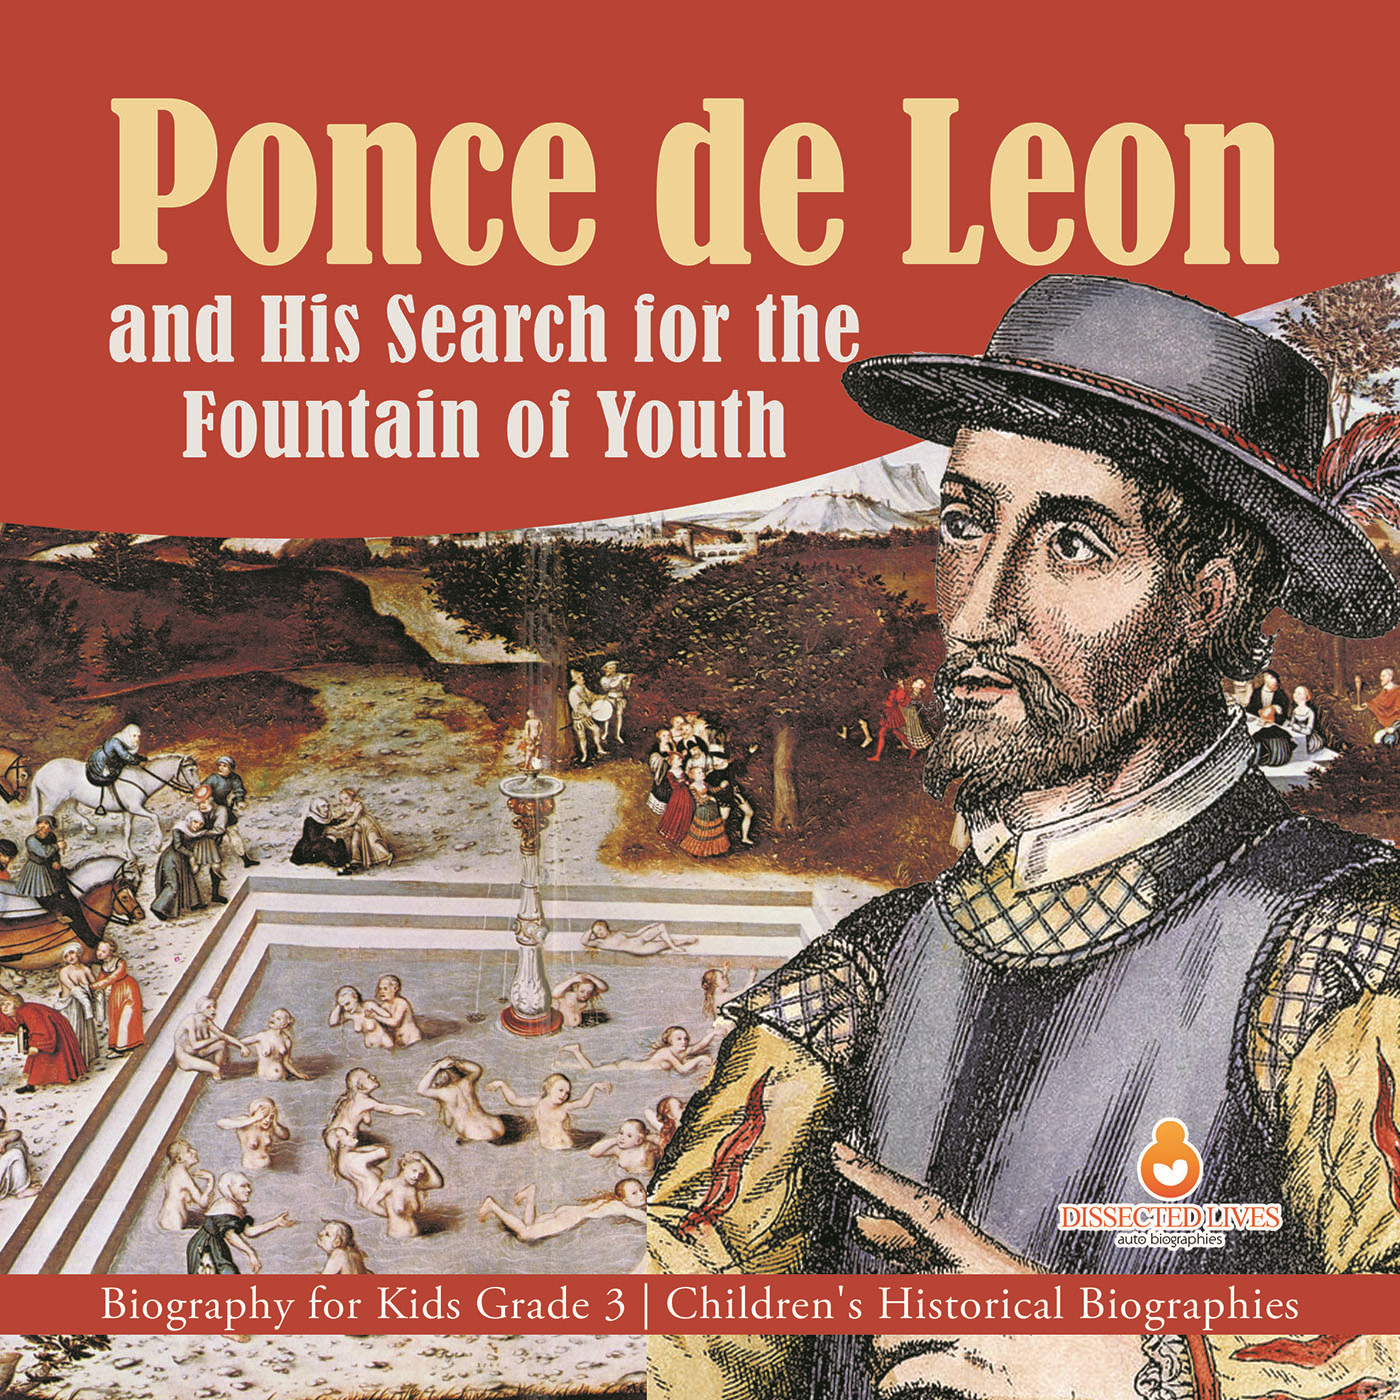 Ponce de Leon and His Search for the Fountain of Youth | Biography for Kids Grade 3 | Children's Historical Biographies